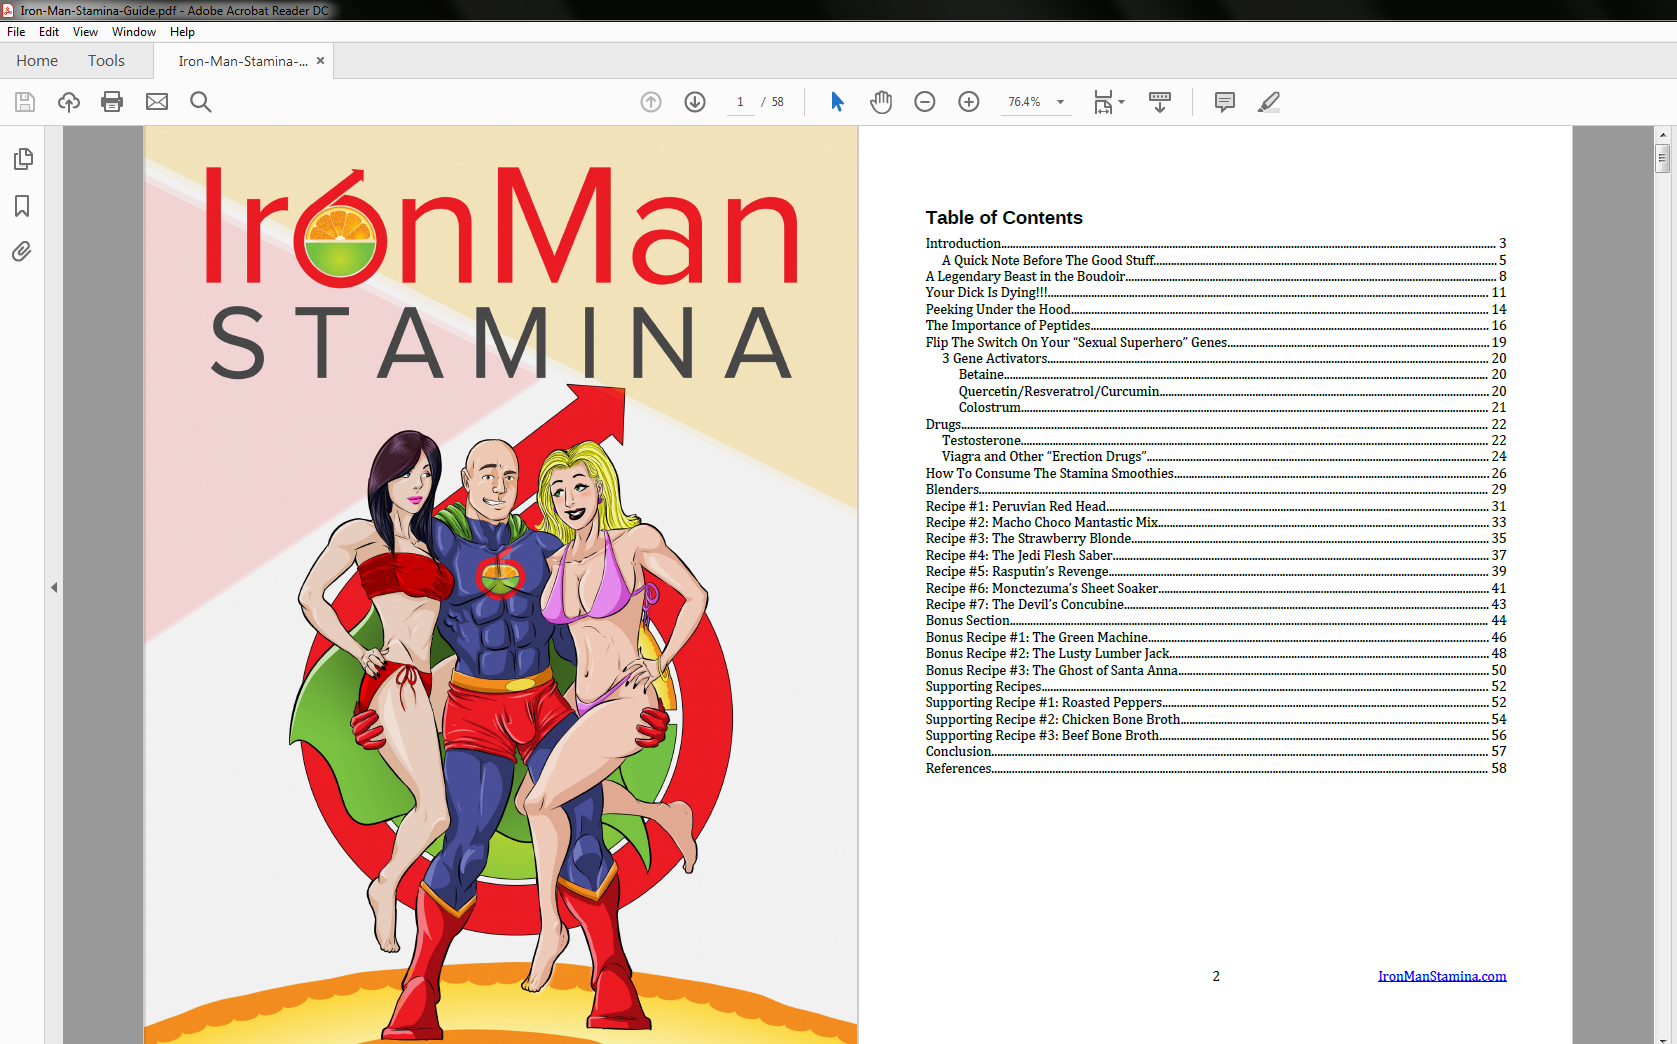 Iron Man Stamina Table of Contents